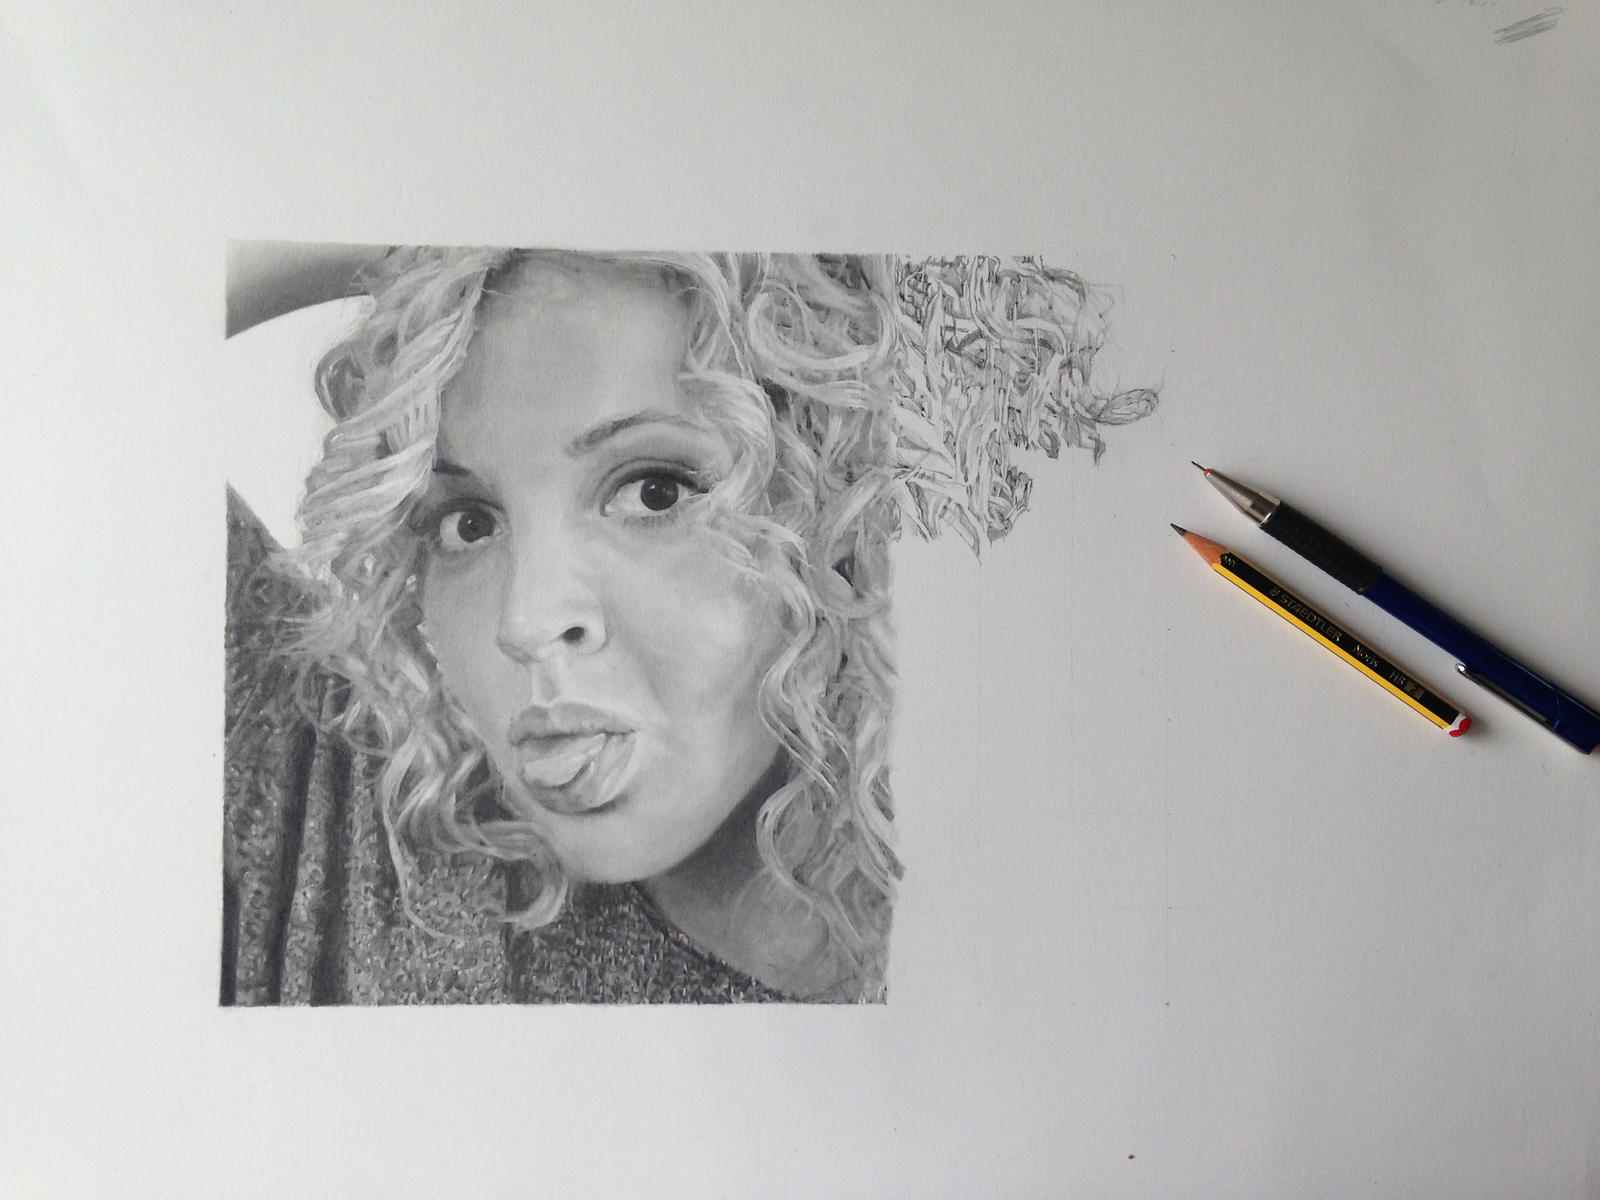 Self portrait in pencil stage 4 by s messias